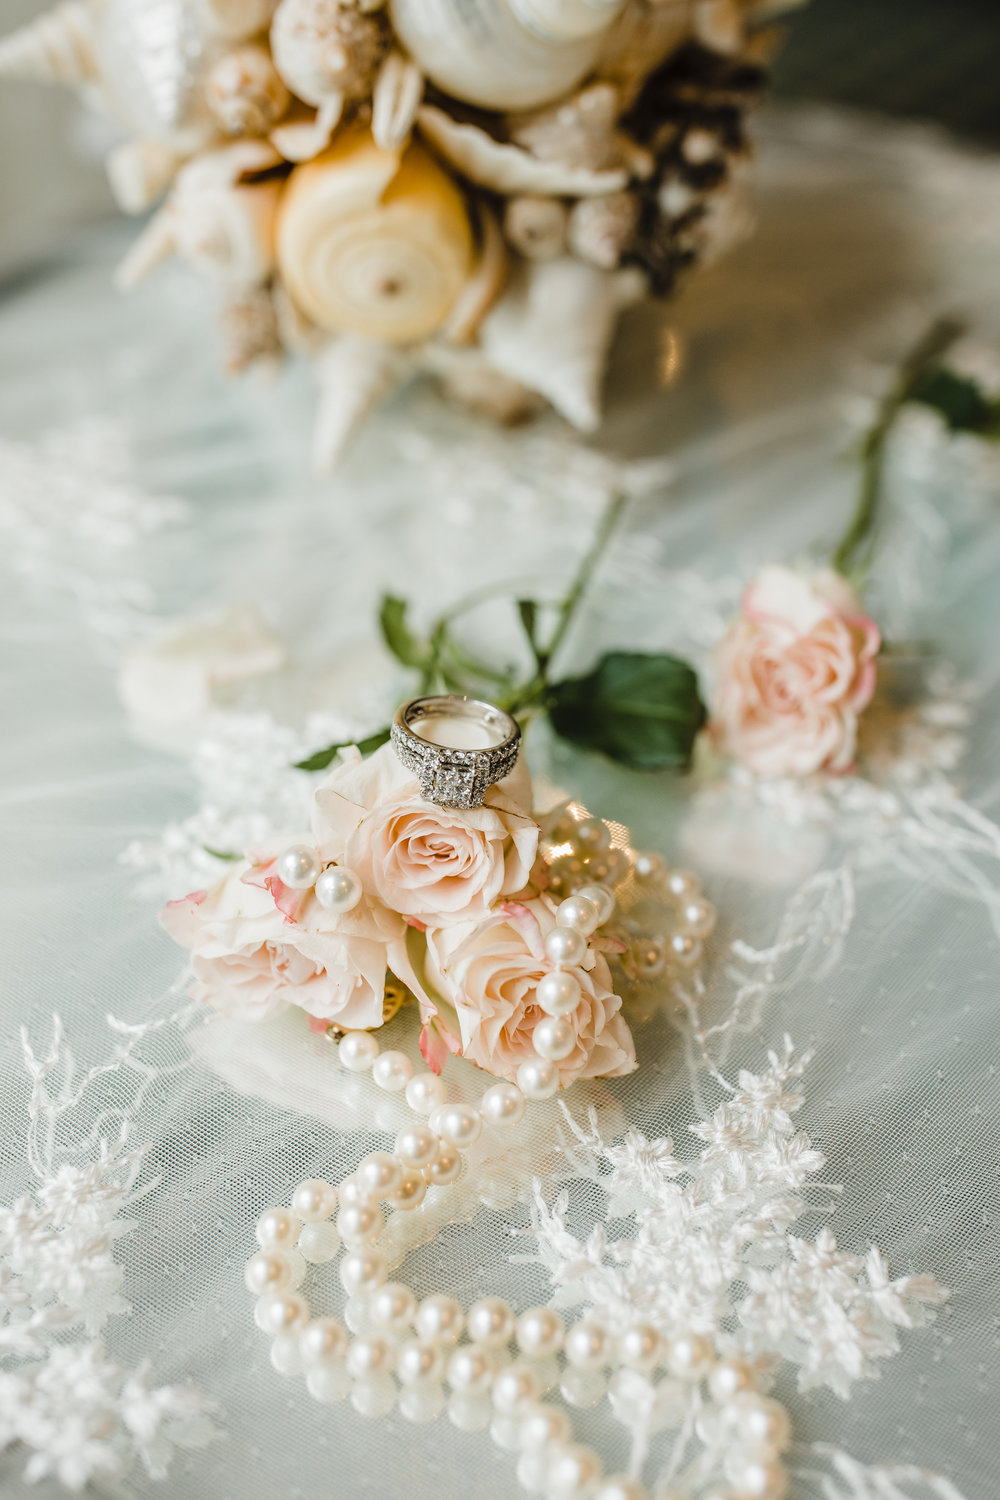 professional wedding photographer in westminister colorado lace and pearls wedding details pink roses